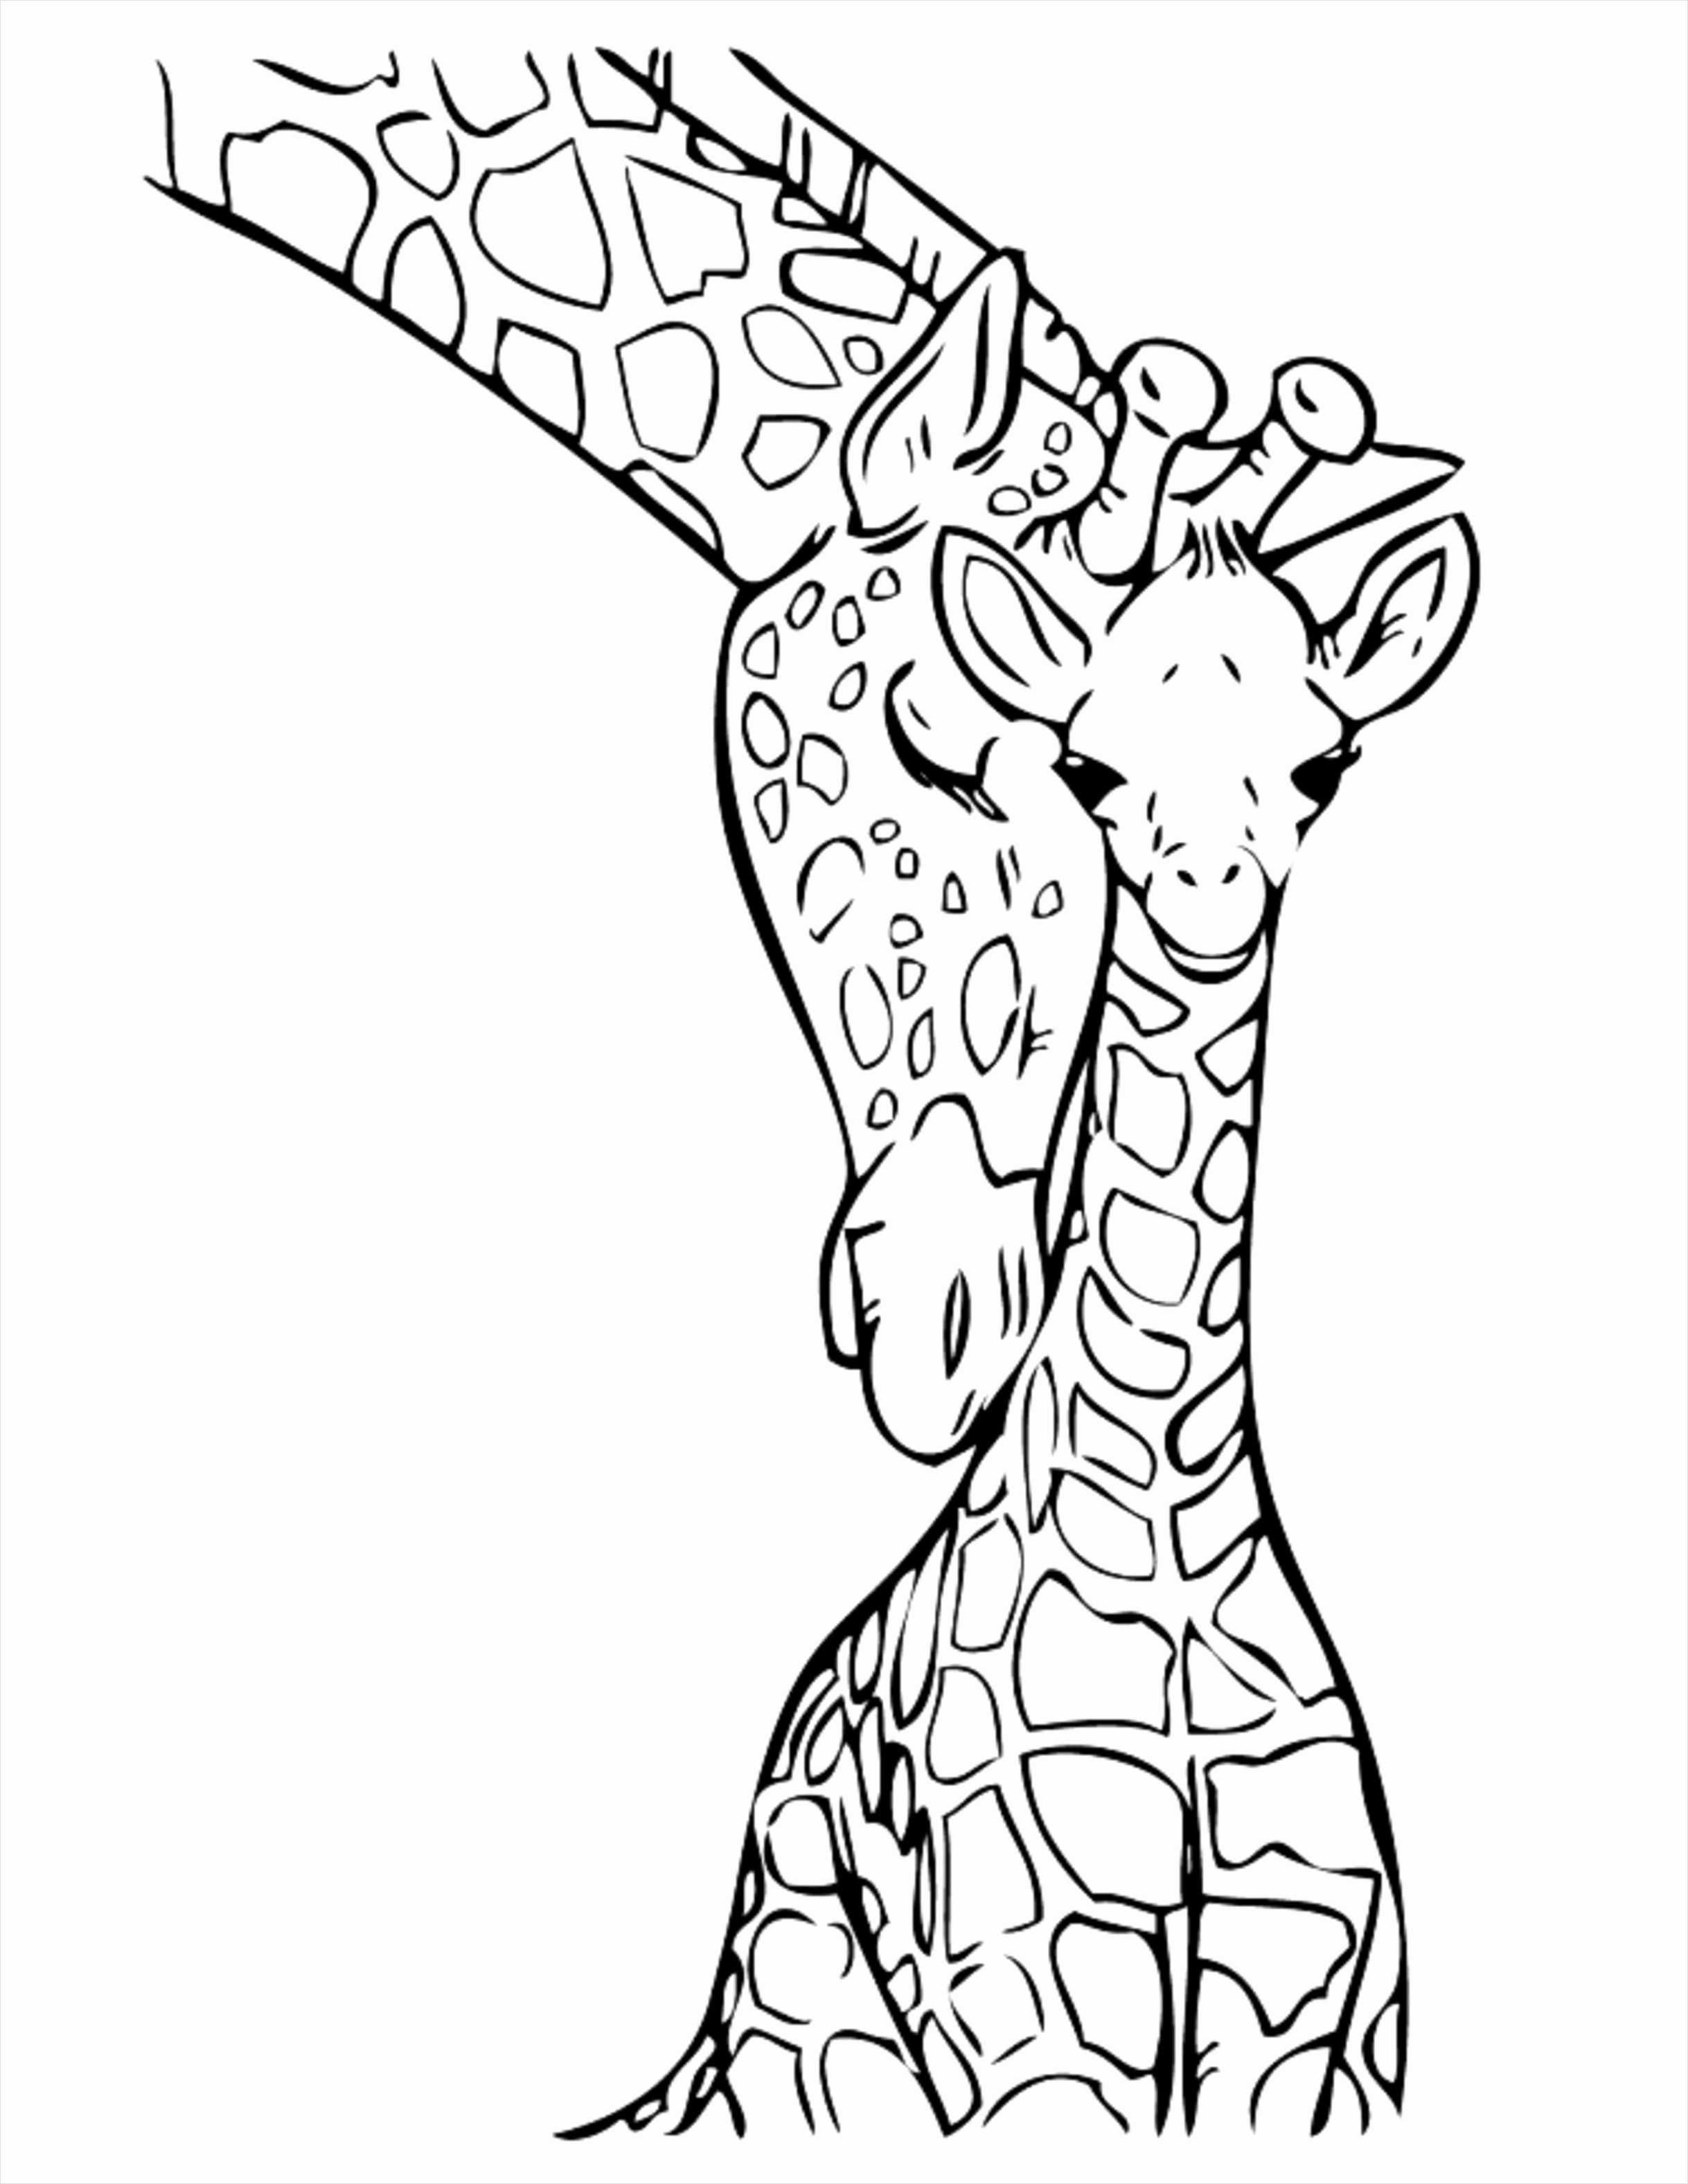 White Farmhouse Exterior Colors Beautiful White Farmhouse Exterior Colors White Brick Gra Giraffe Coloring Pages Jungle Coloring Pages Zebra Coloring Pages